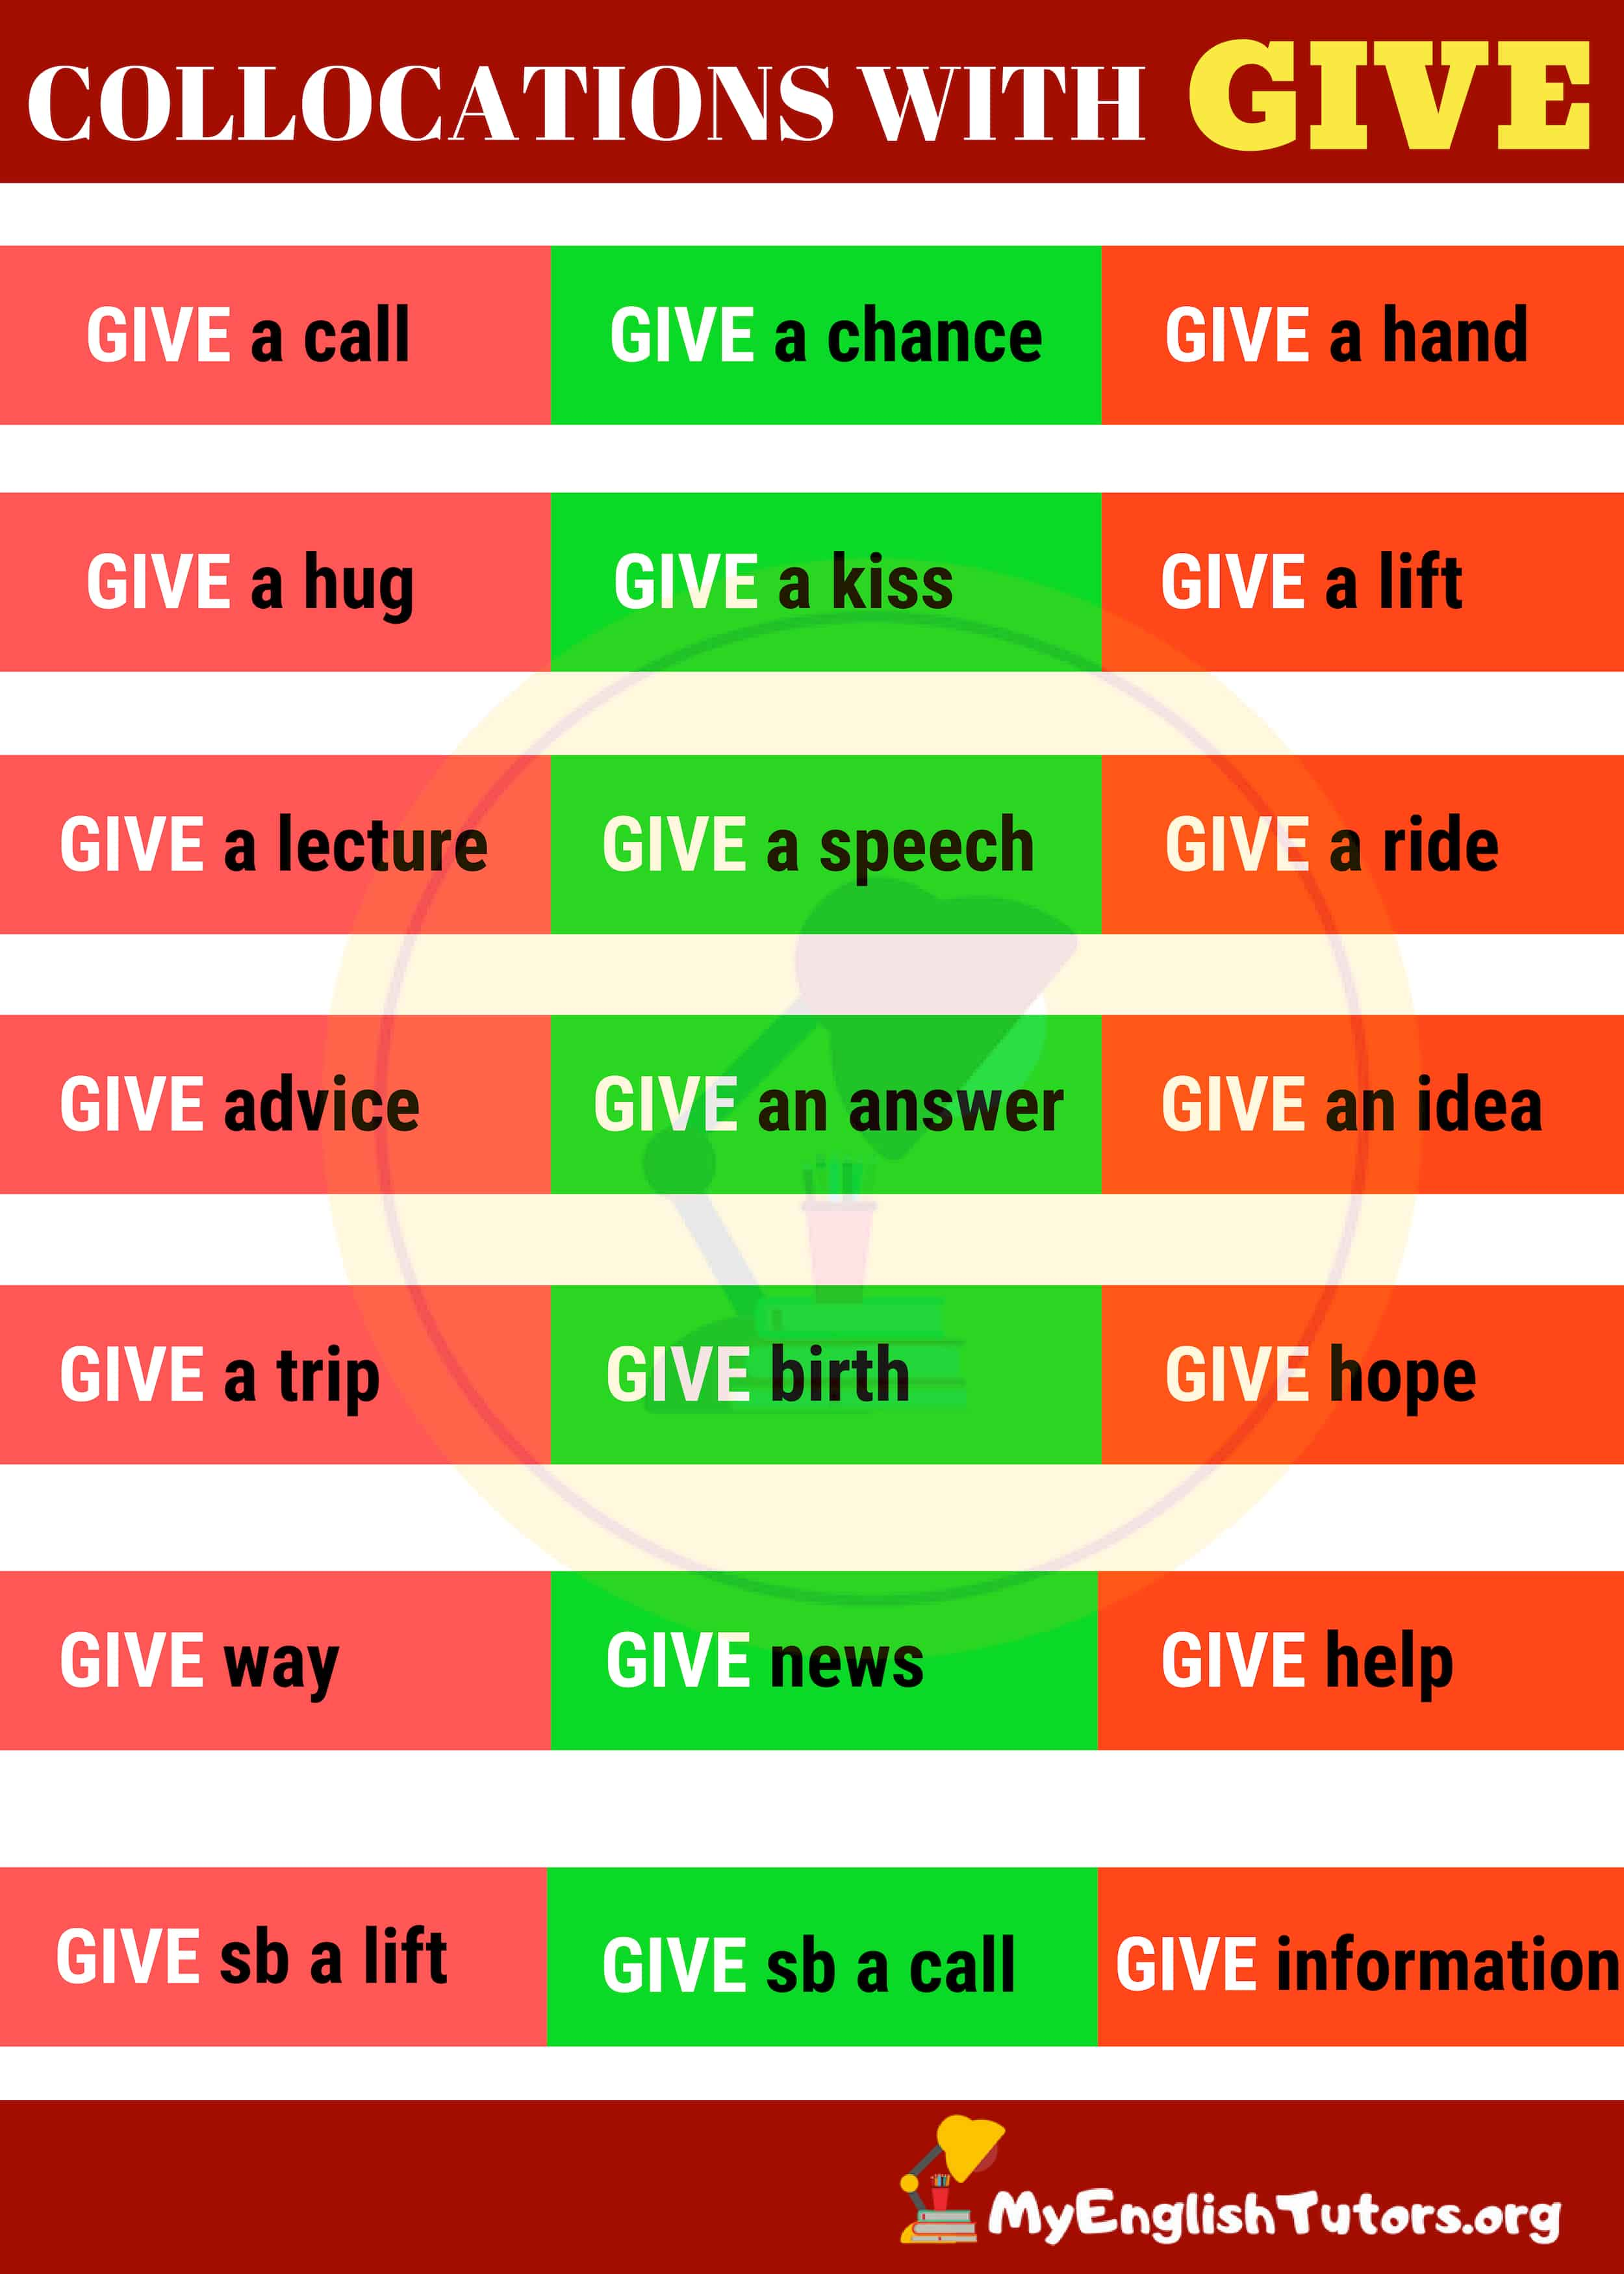 40+ Common English Collocations with GIVE